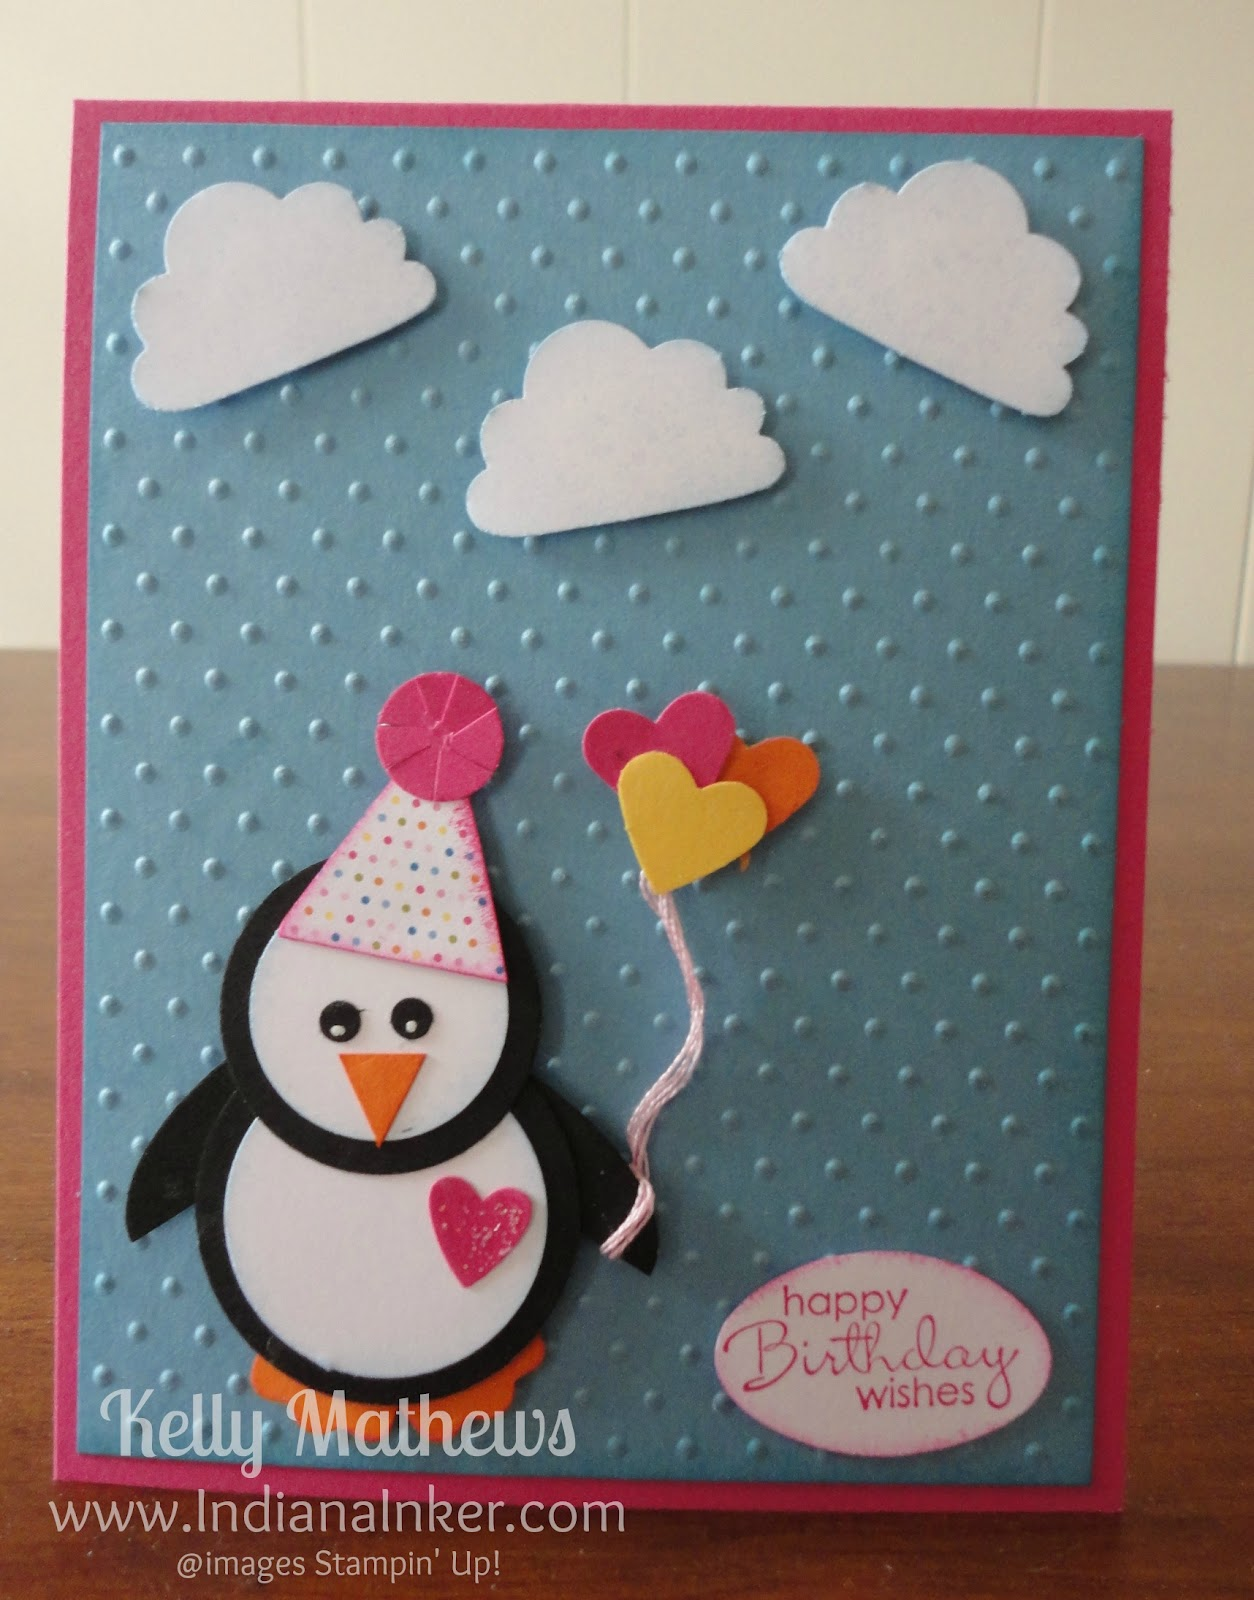 indiana inker penguin birthday card, Birthday card